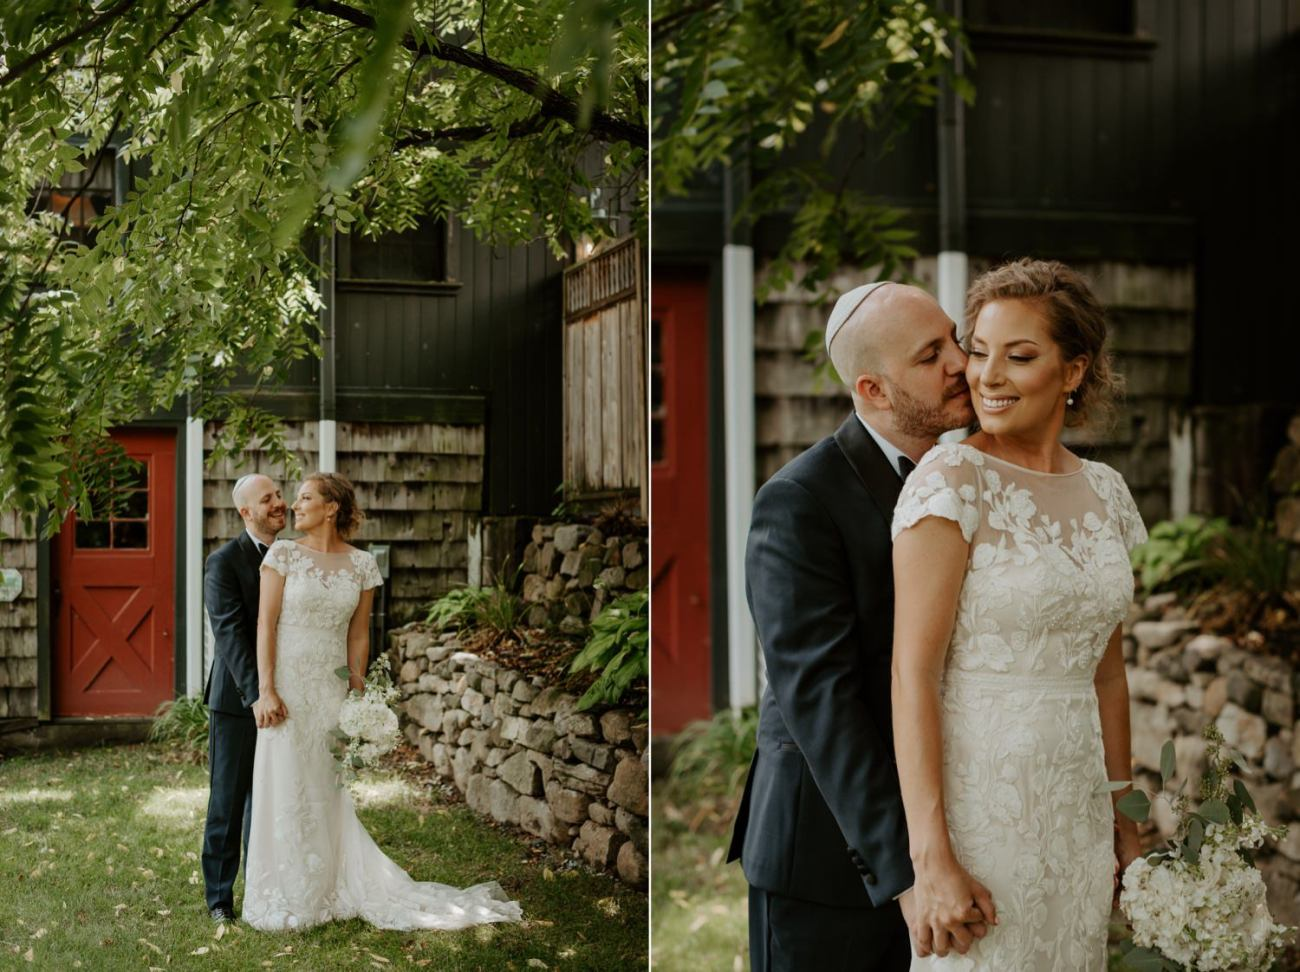 Jacks Barn Oxford New Jersey Wedding New Jersey Wedding Photographer NJ Wedding Venue Rustic Barn Wedding Anais Possamai Photography 021